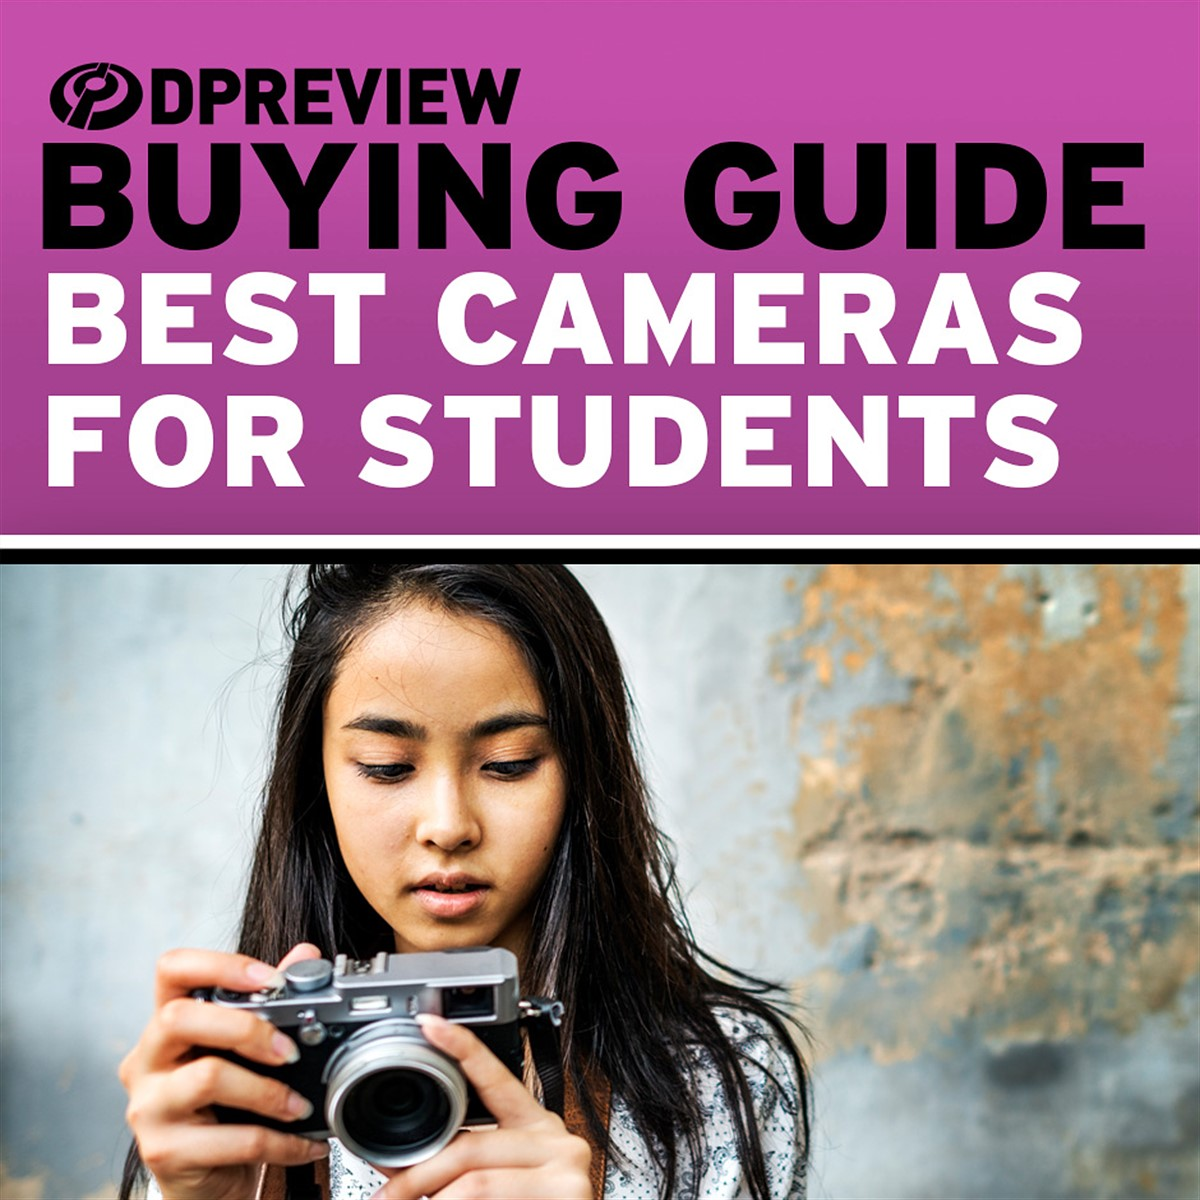 Buying Guide: The best cameras for students: Digital